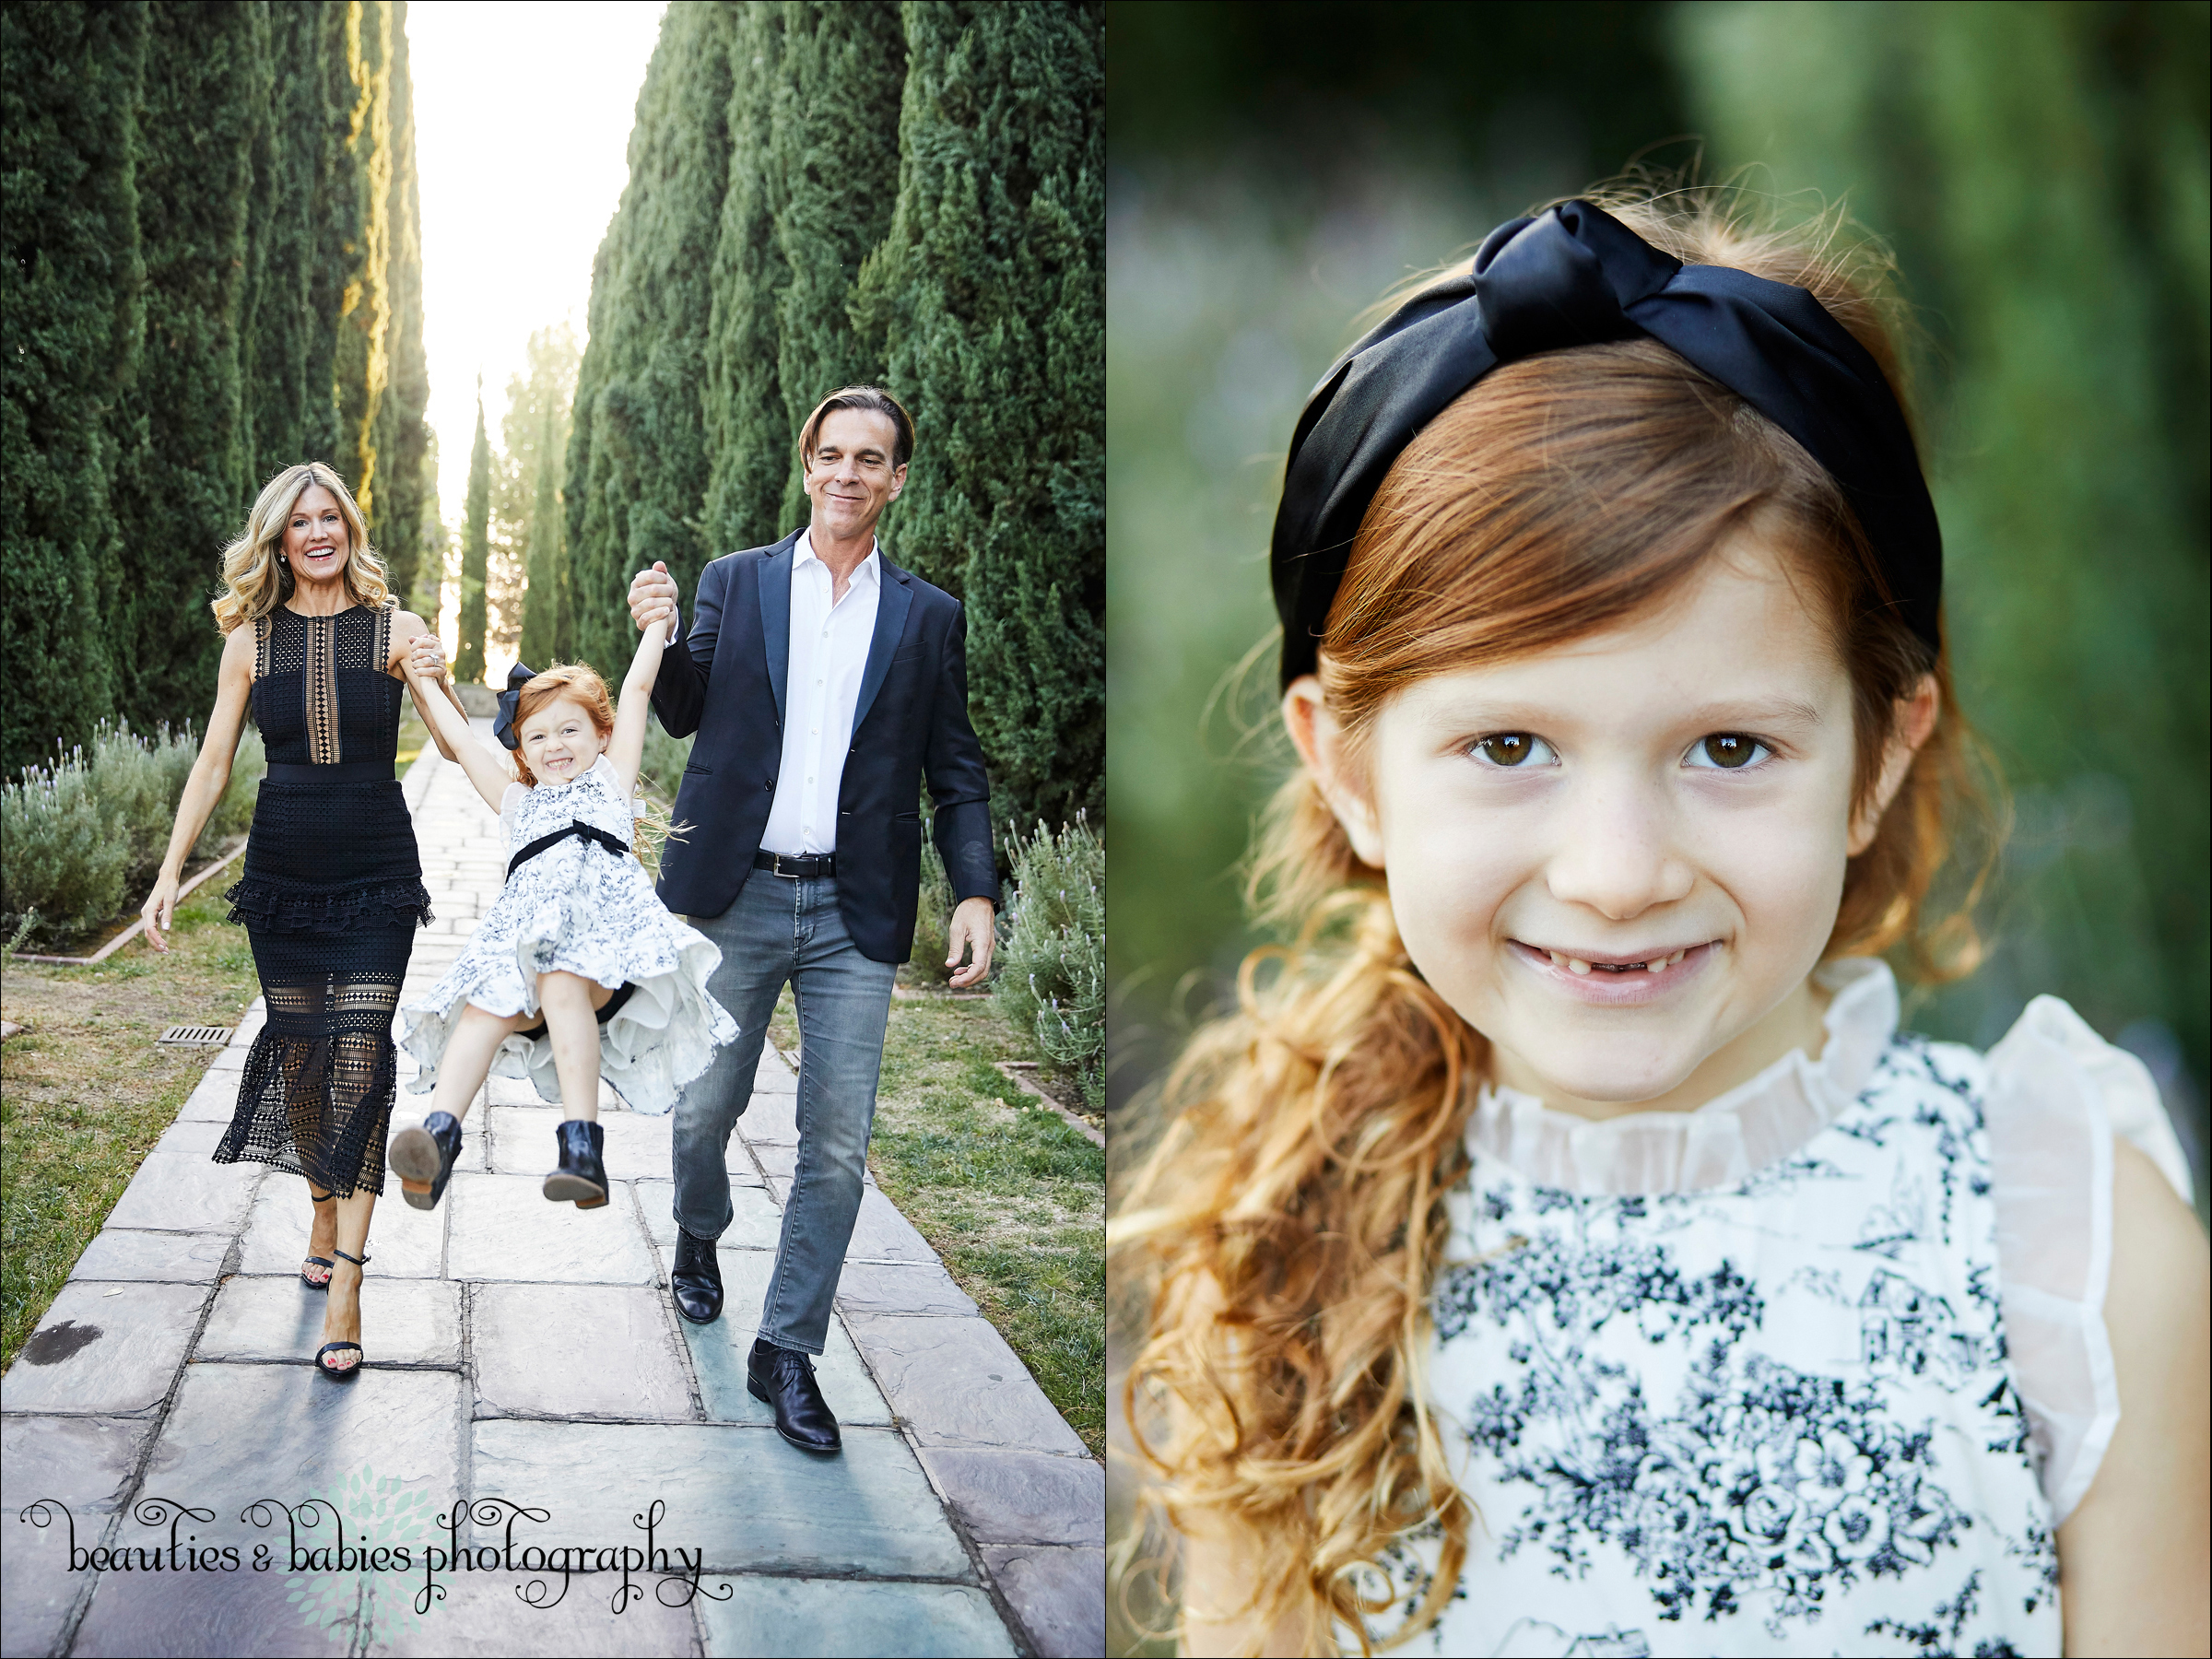 Professional family photographer Los Angeles portrait and lifestyle outdoor photography